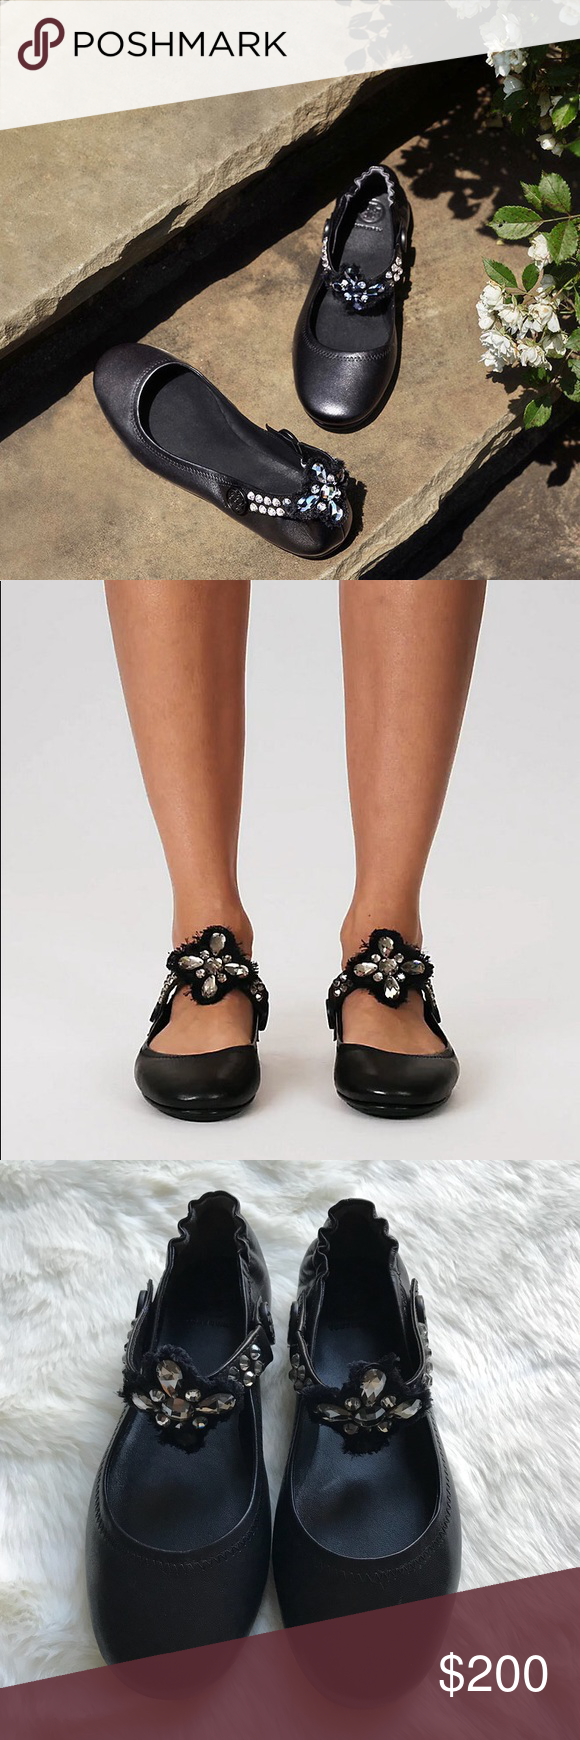 b3a3ecc2f63594 Tory Burch Minnie Embellished Two Way Ballet Flats •Ballet flats with an  embellished and logo-accented strap that can be positioned in the front